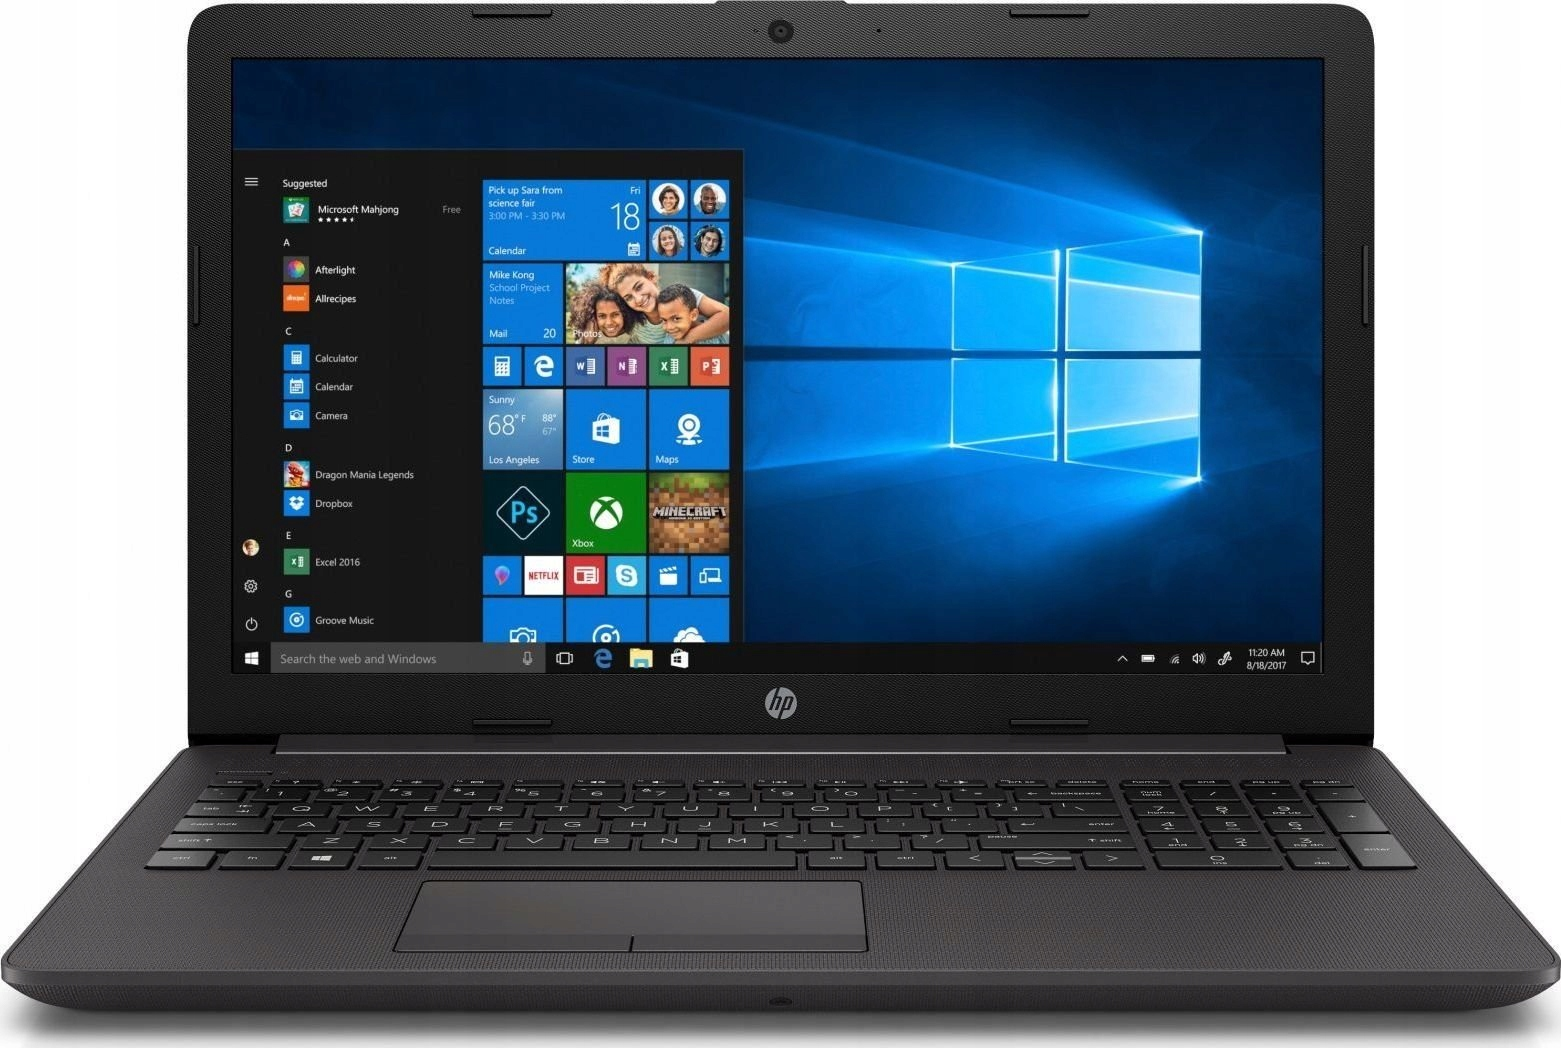 Komputer Laptop Hp Ryzen 3500U Ssd 1TB 32GB DDR4